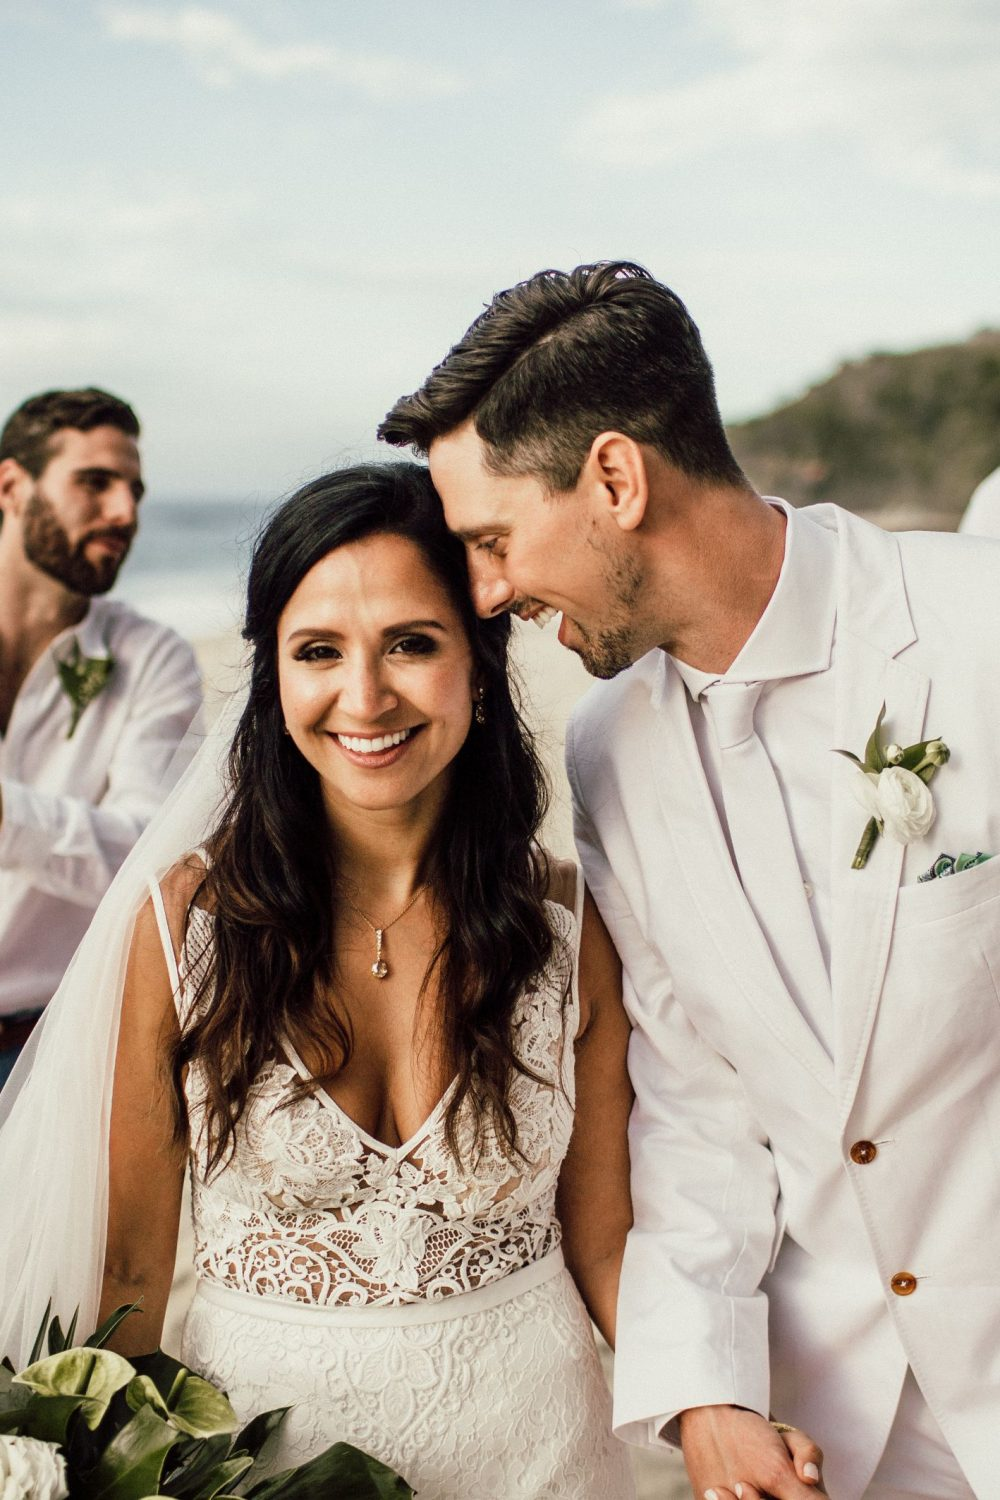 bride and groom laugh and walk with their wedding party on the beach at this Sayulita Mexico destination wedding